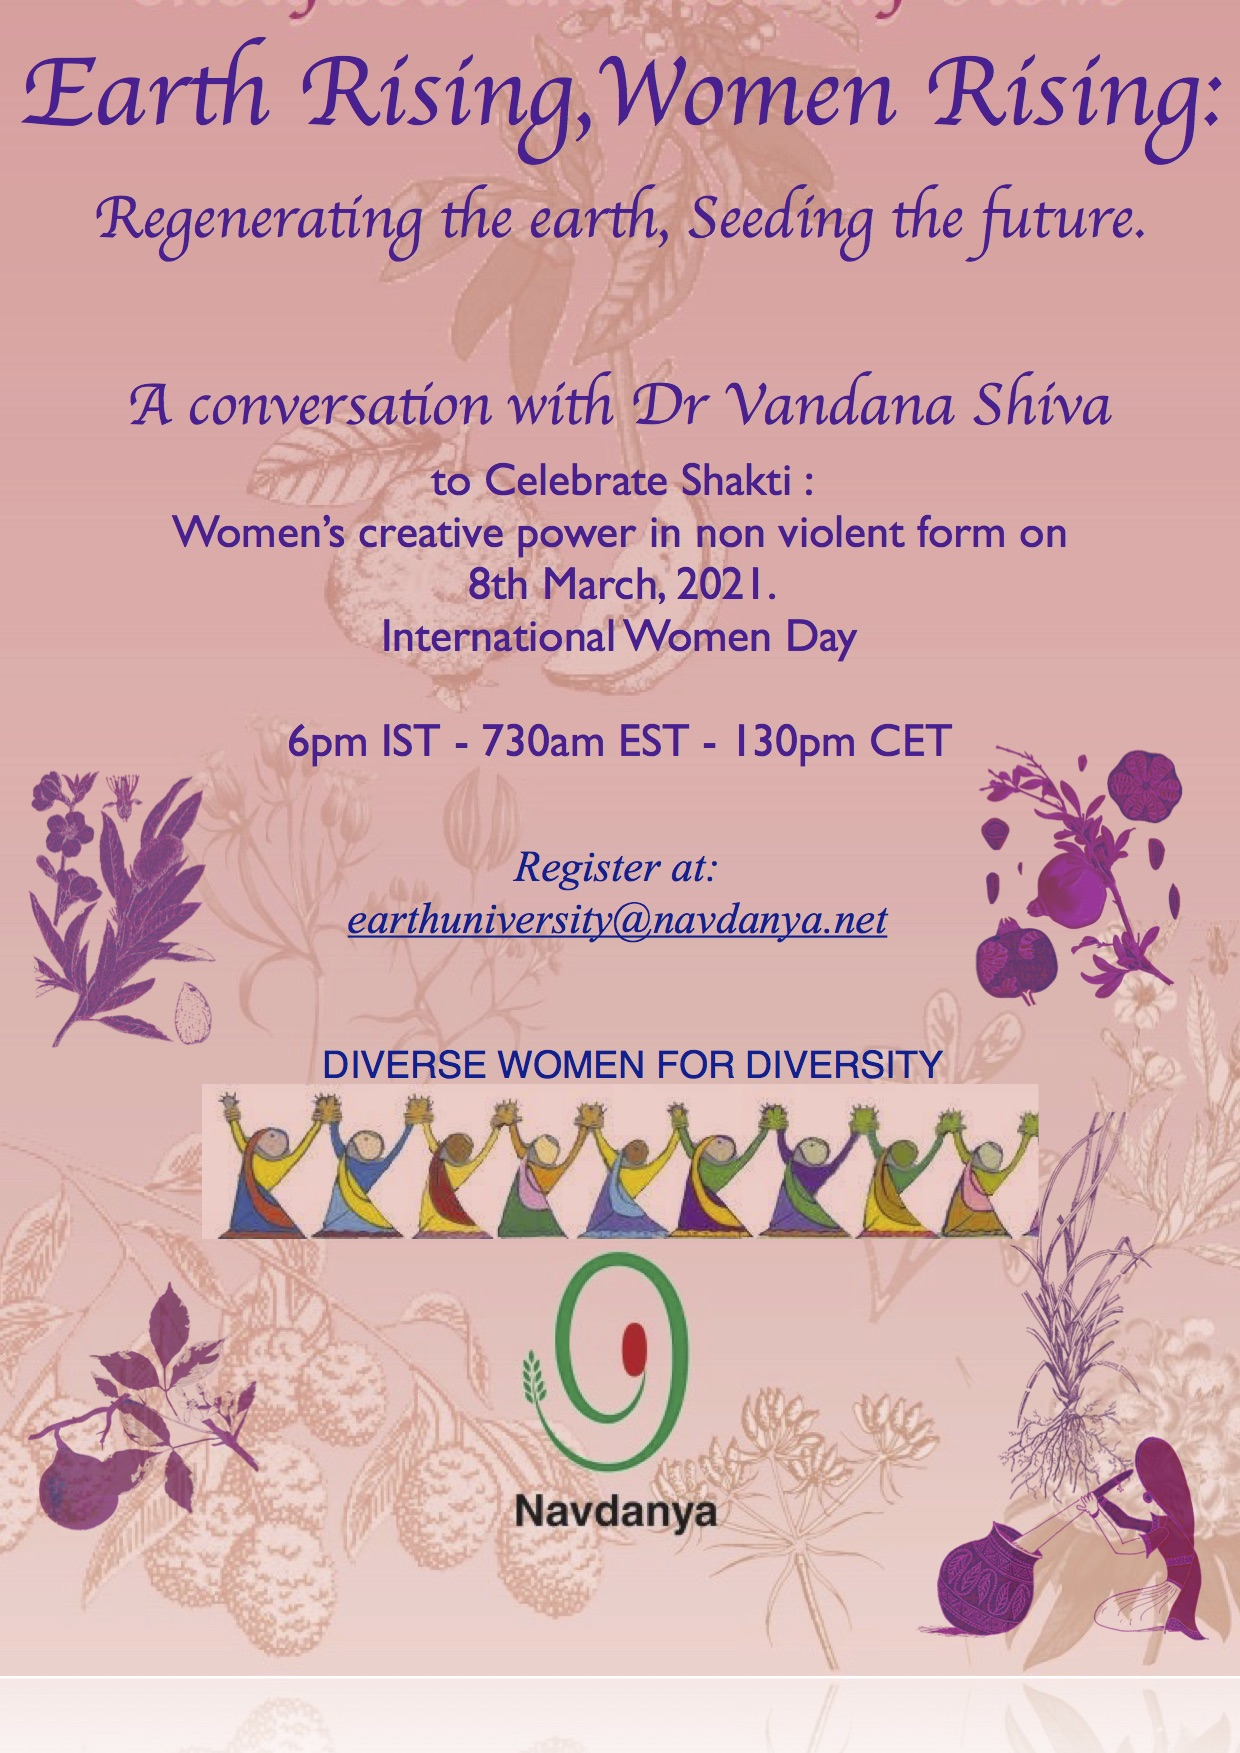 Earth Rising, Women Rising – Regenerating the earth, Seeding the future: A conversation with Dr Vandana Shiva